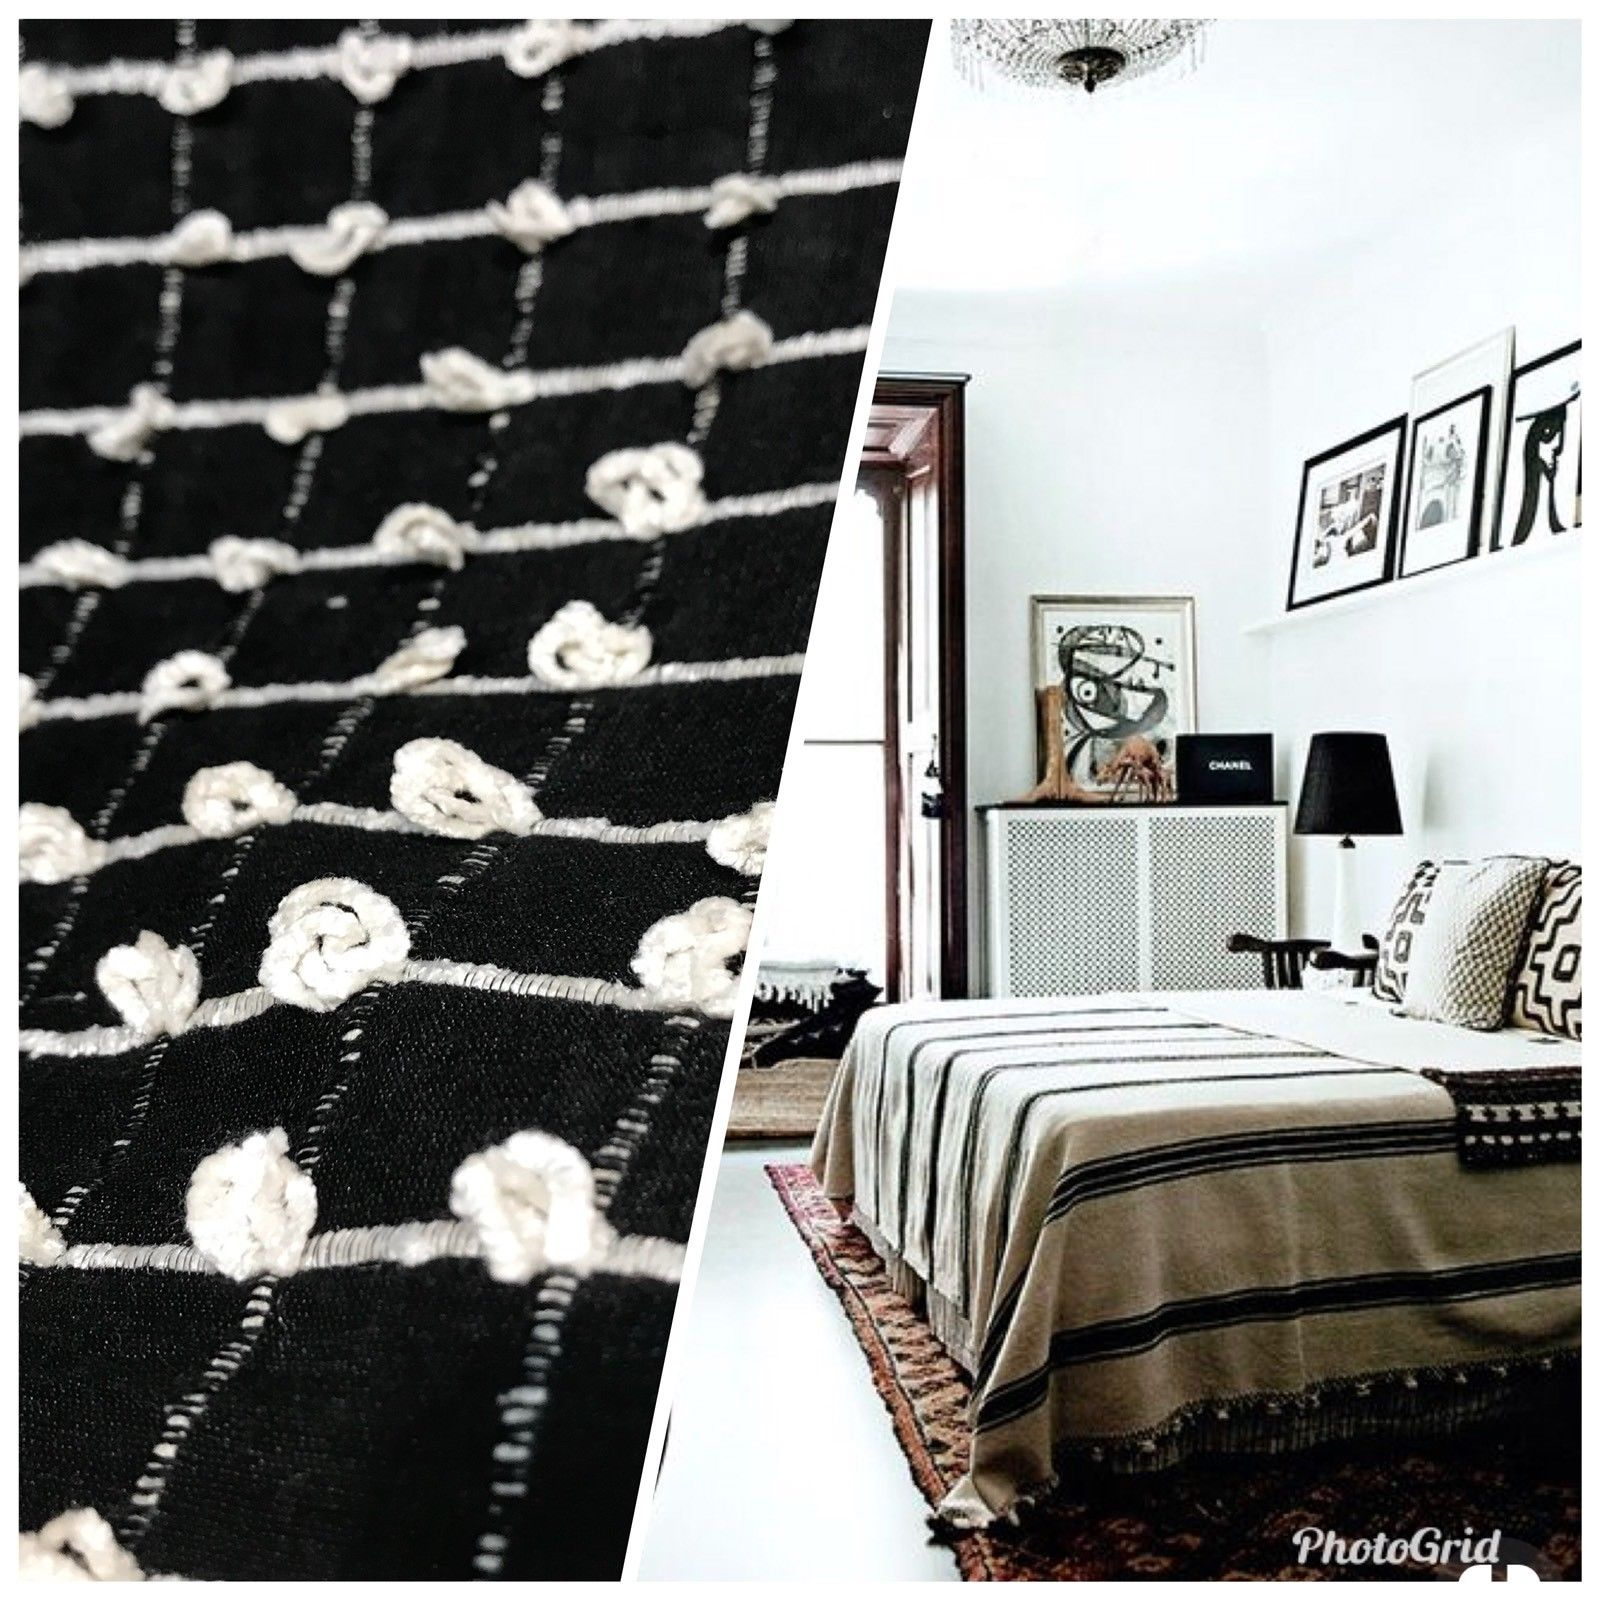 Interior Design Yarn Loop 100% Silk Fabric Black And White - Fancy Styles Fabric Pierre Frey Lee Jofa Brunschwig & Fils